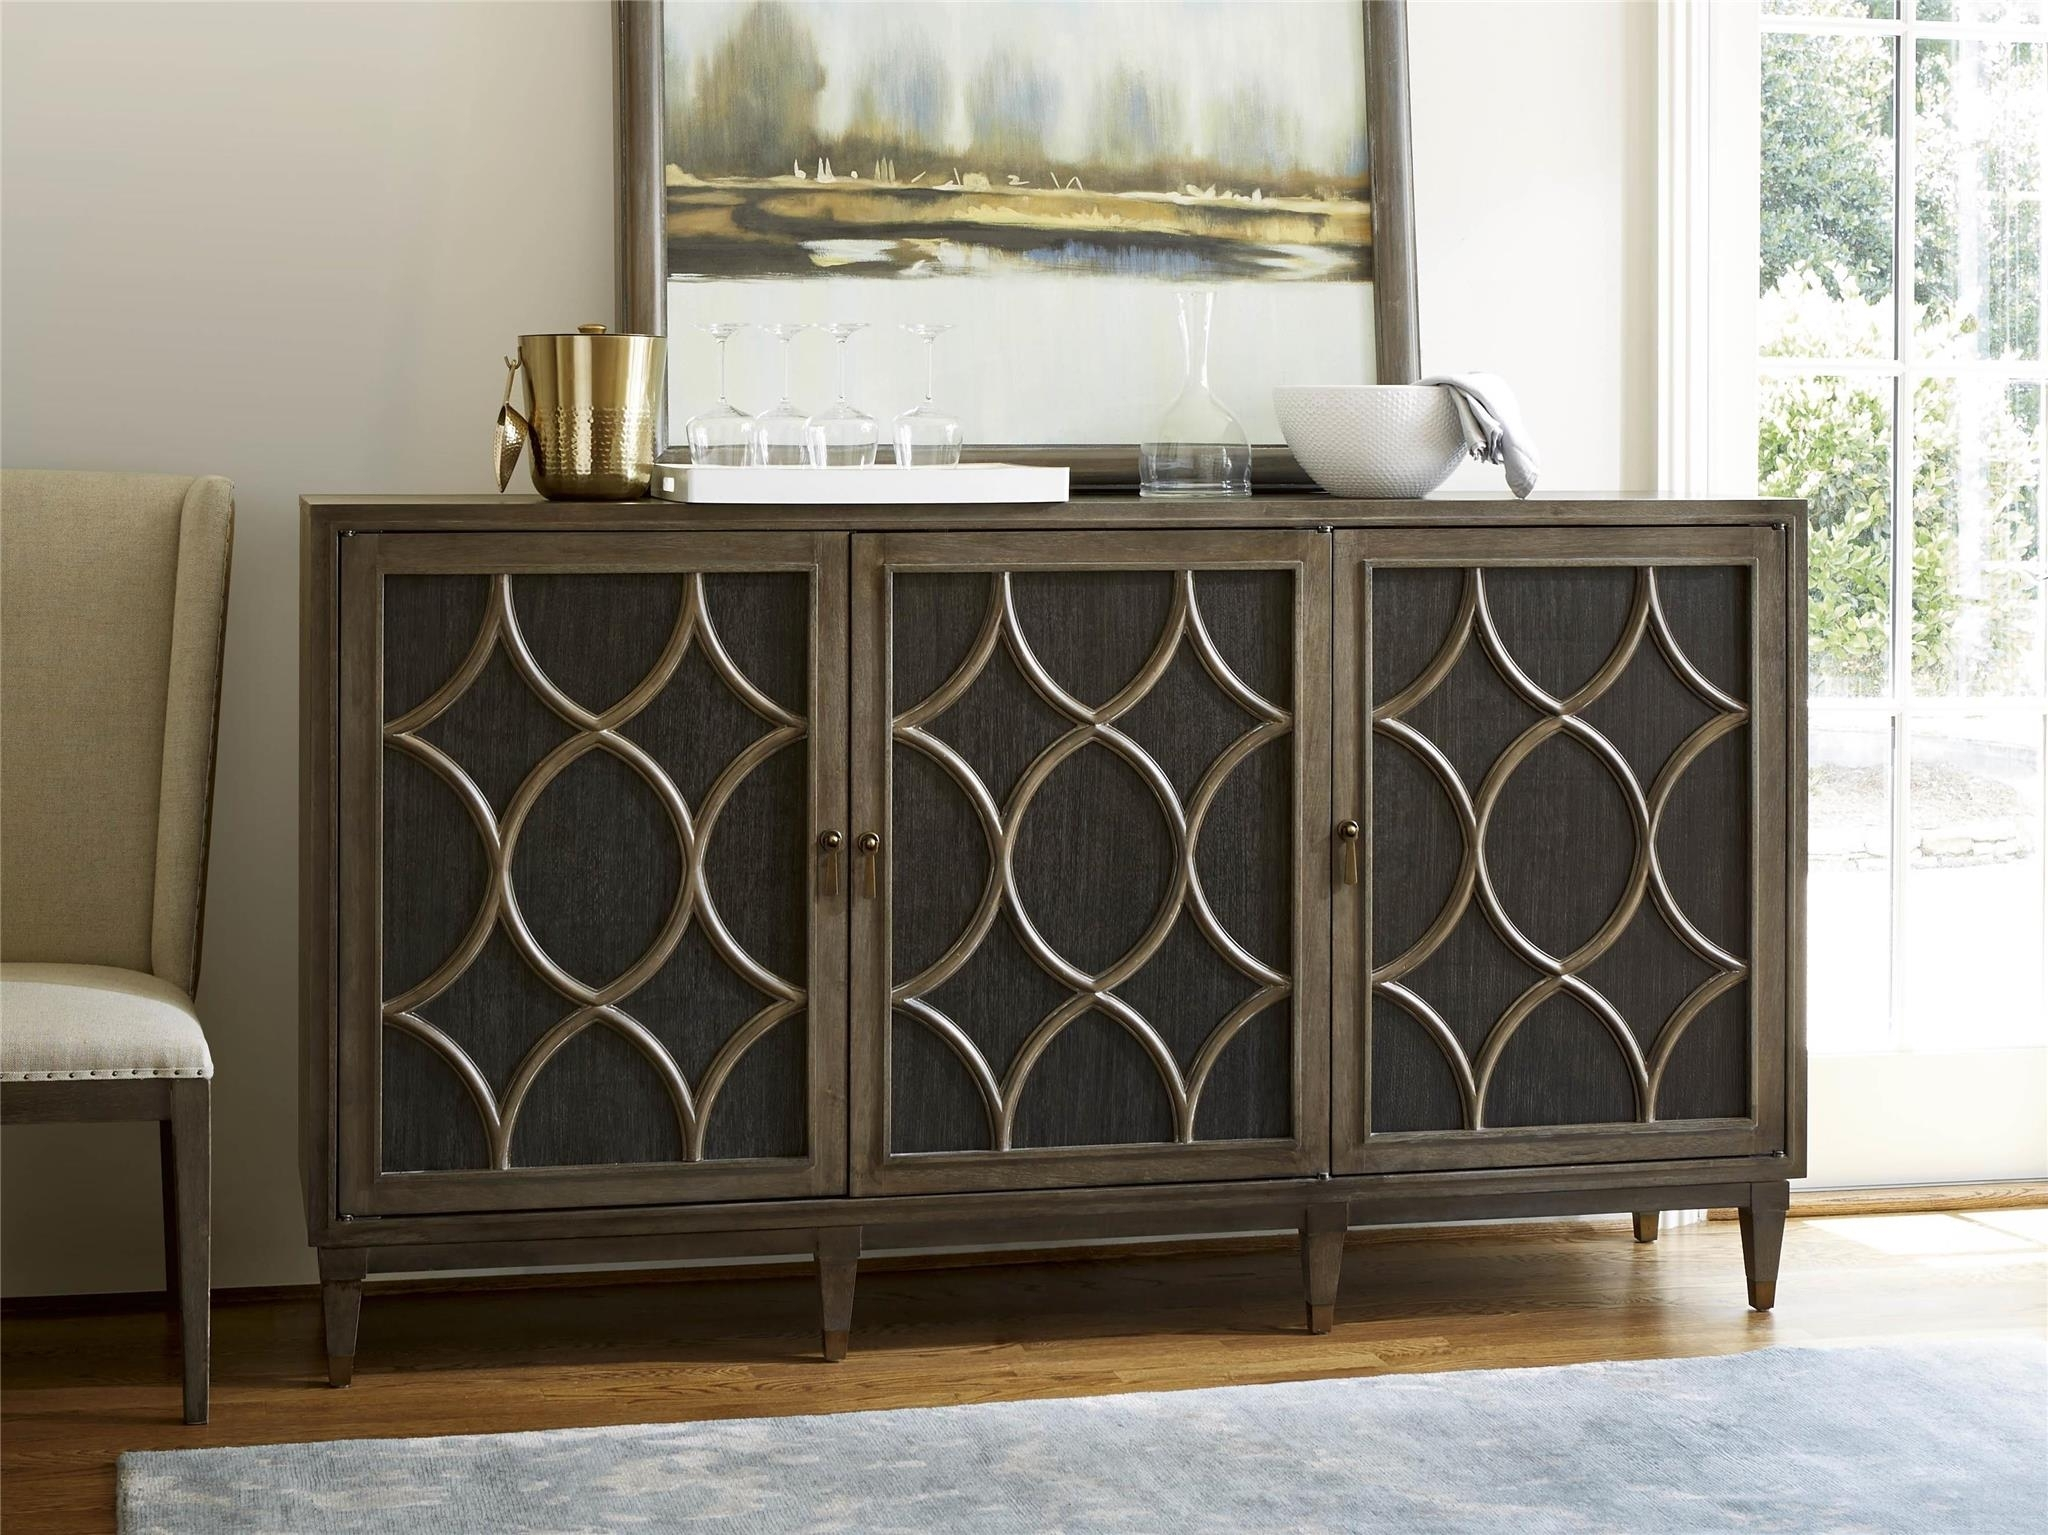 Universal Furniture | Playlist | Sideboard inside Iron Sideboards (Image 28 of 30)